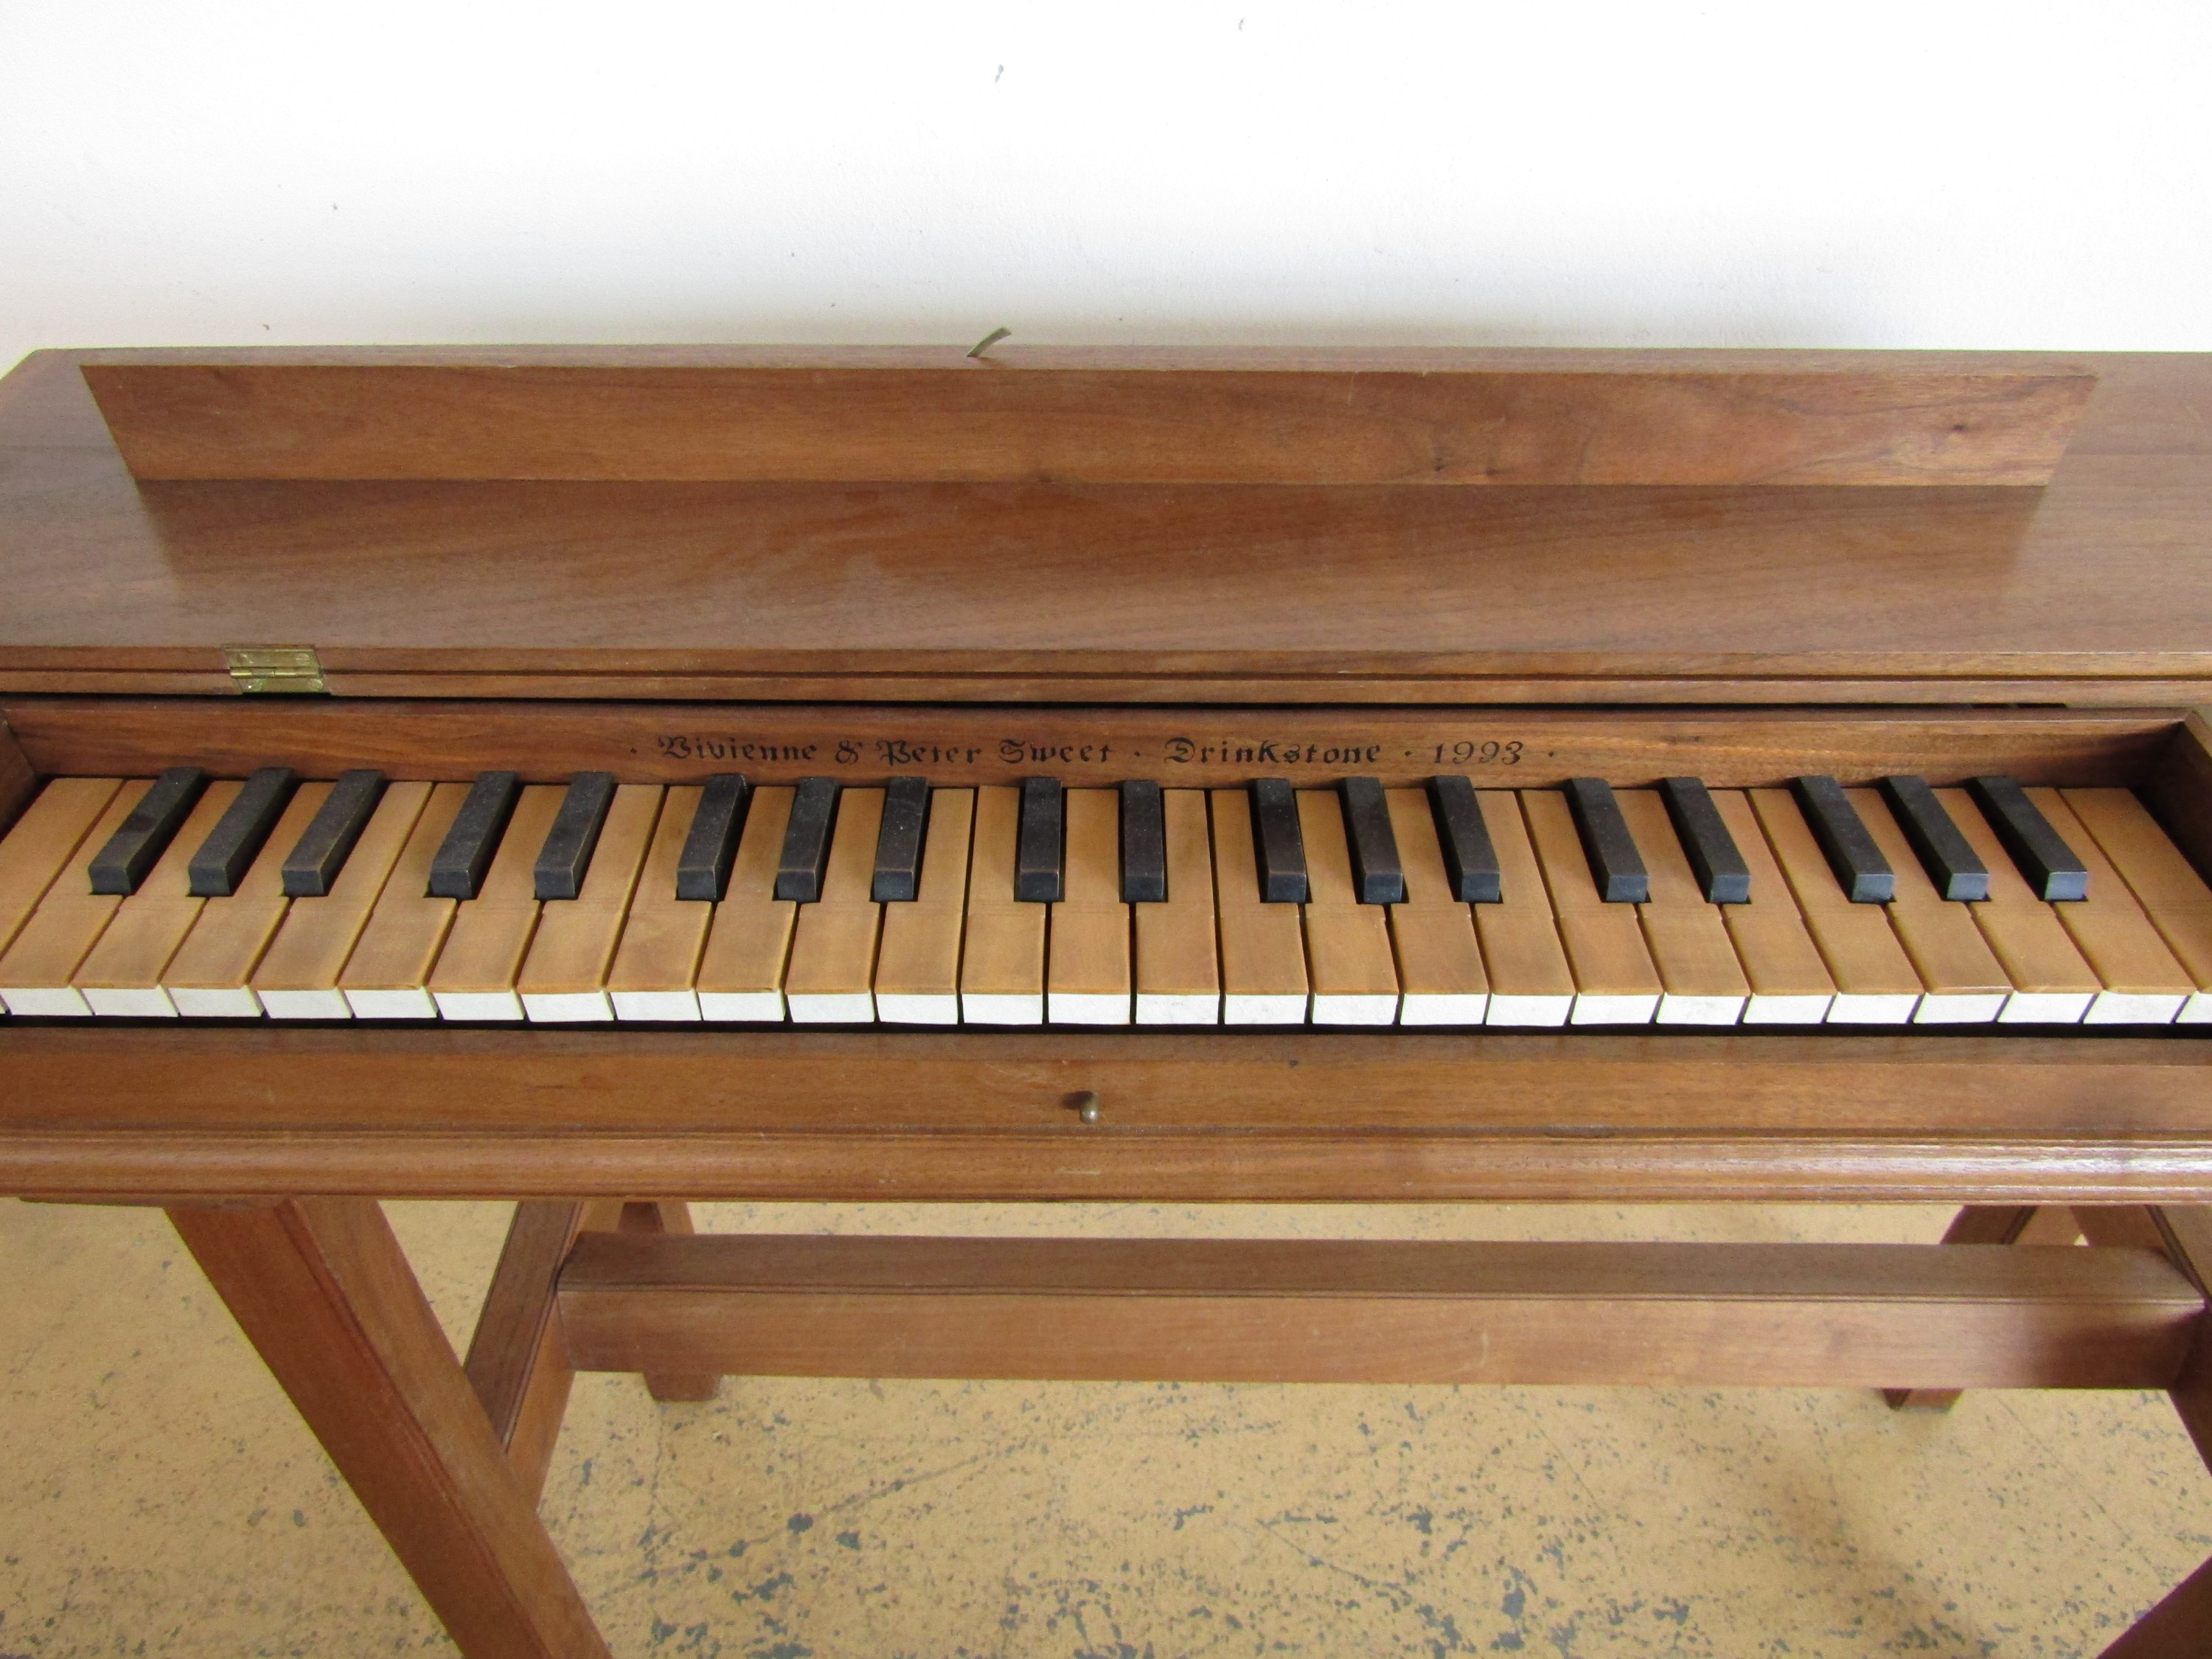 Lot 31 - A clavichord by Viviene and Peter Sweet of Drinkstone, 1993